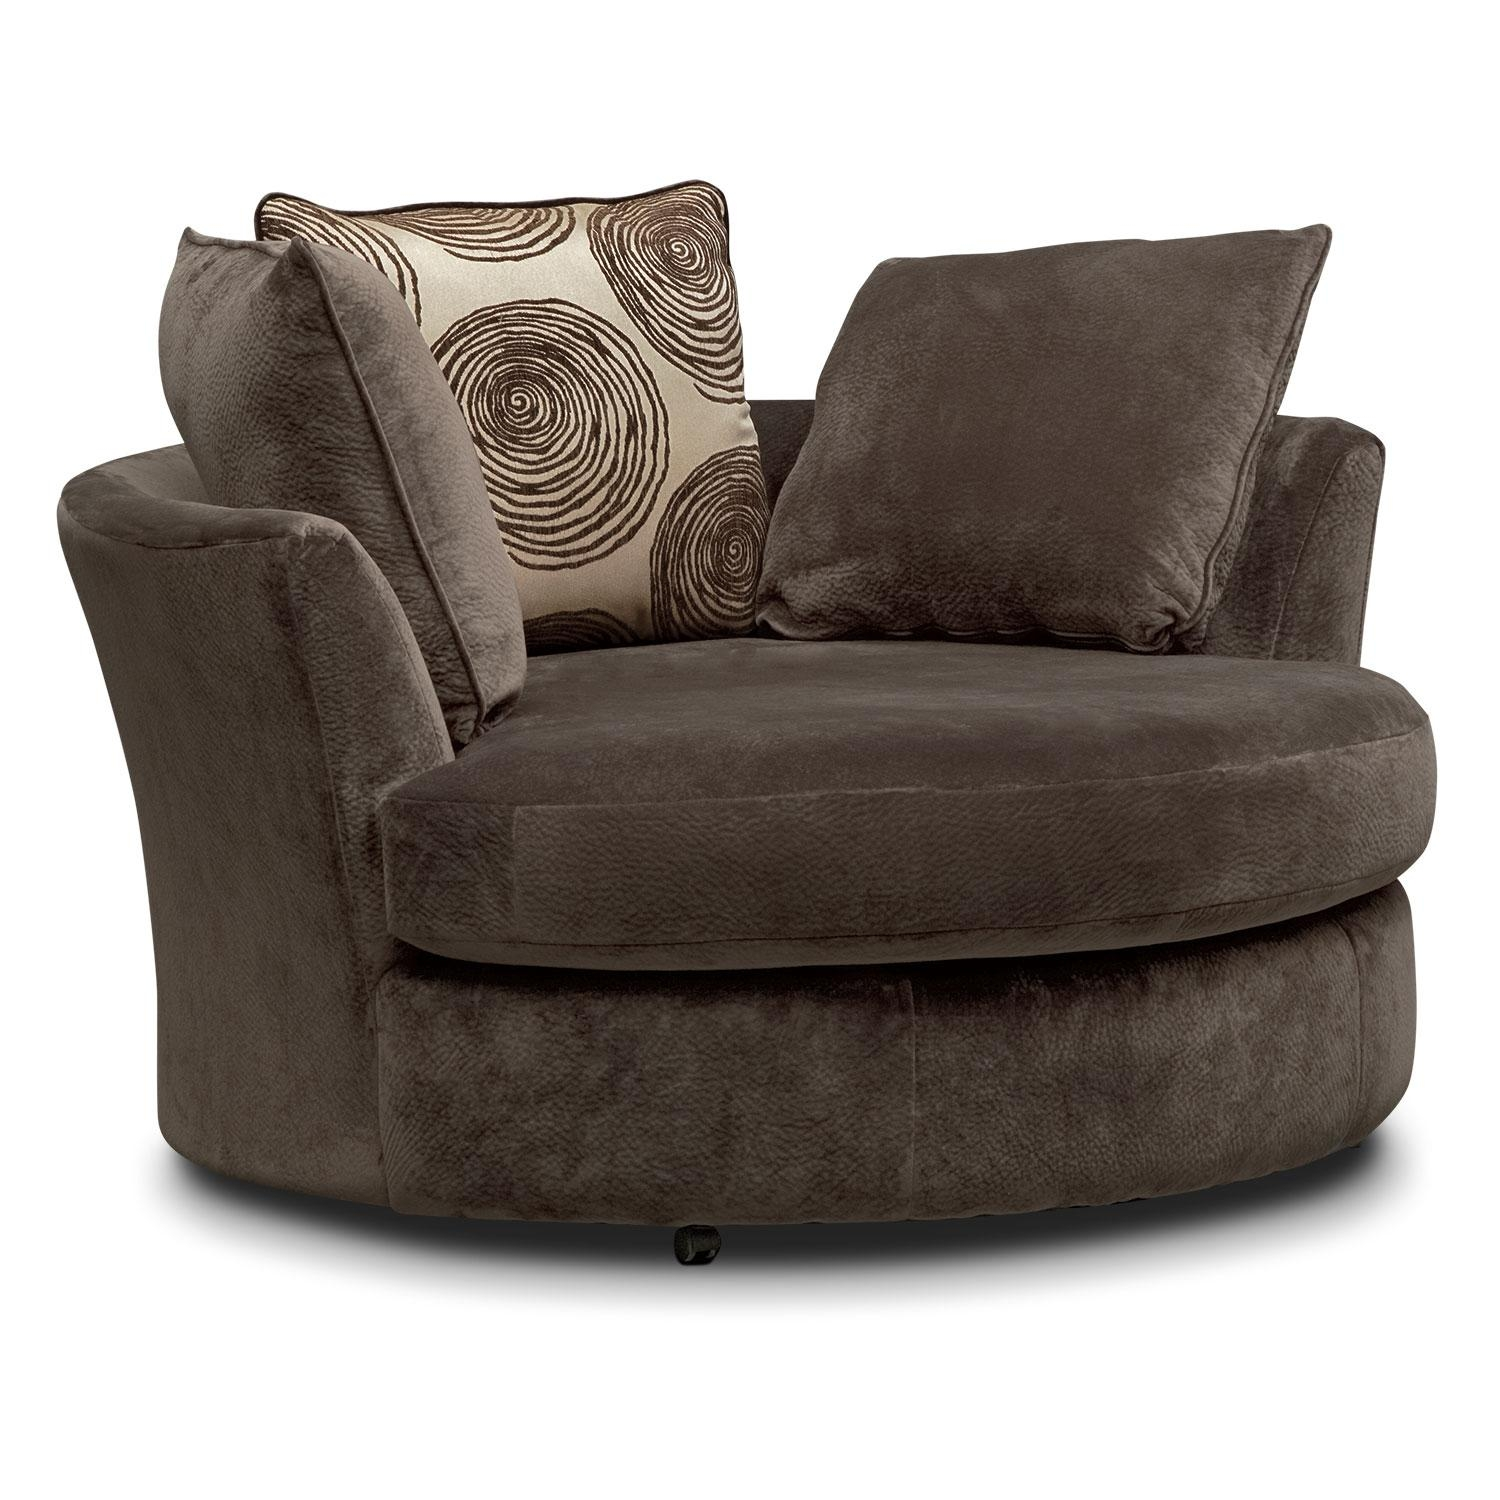 Cordelle Swivel Chair – Chocolate | Value City Furniture Inside Circle Sofa Chairs (View 8 of 20)